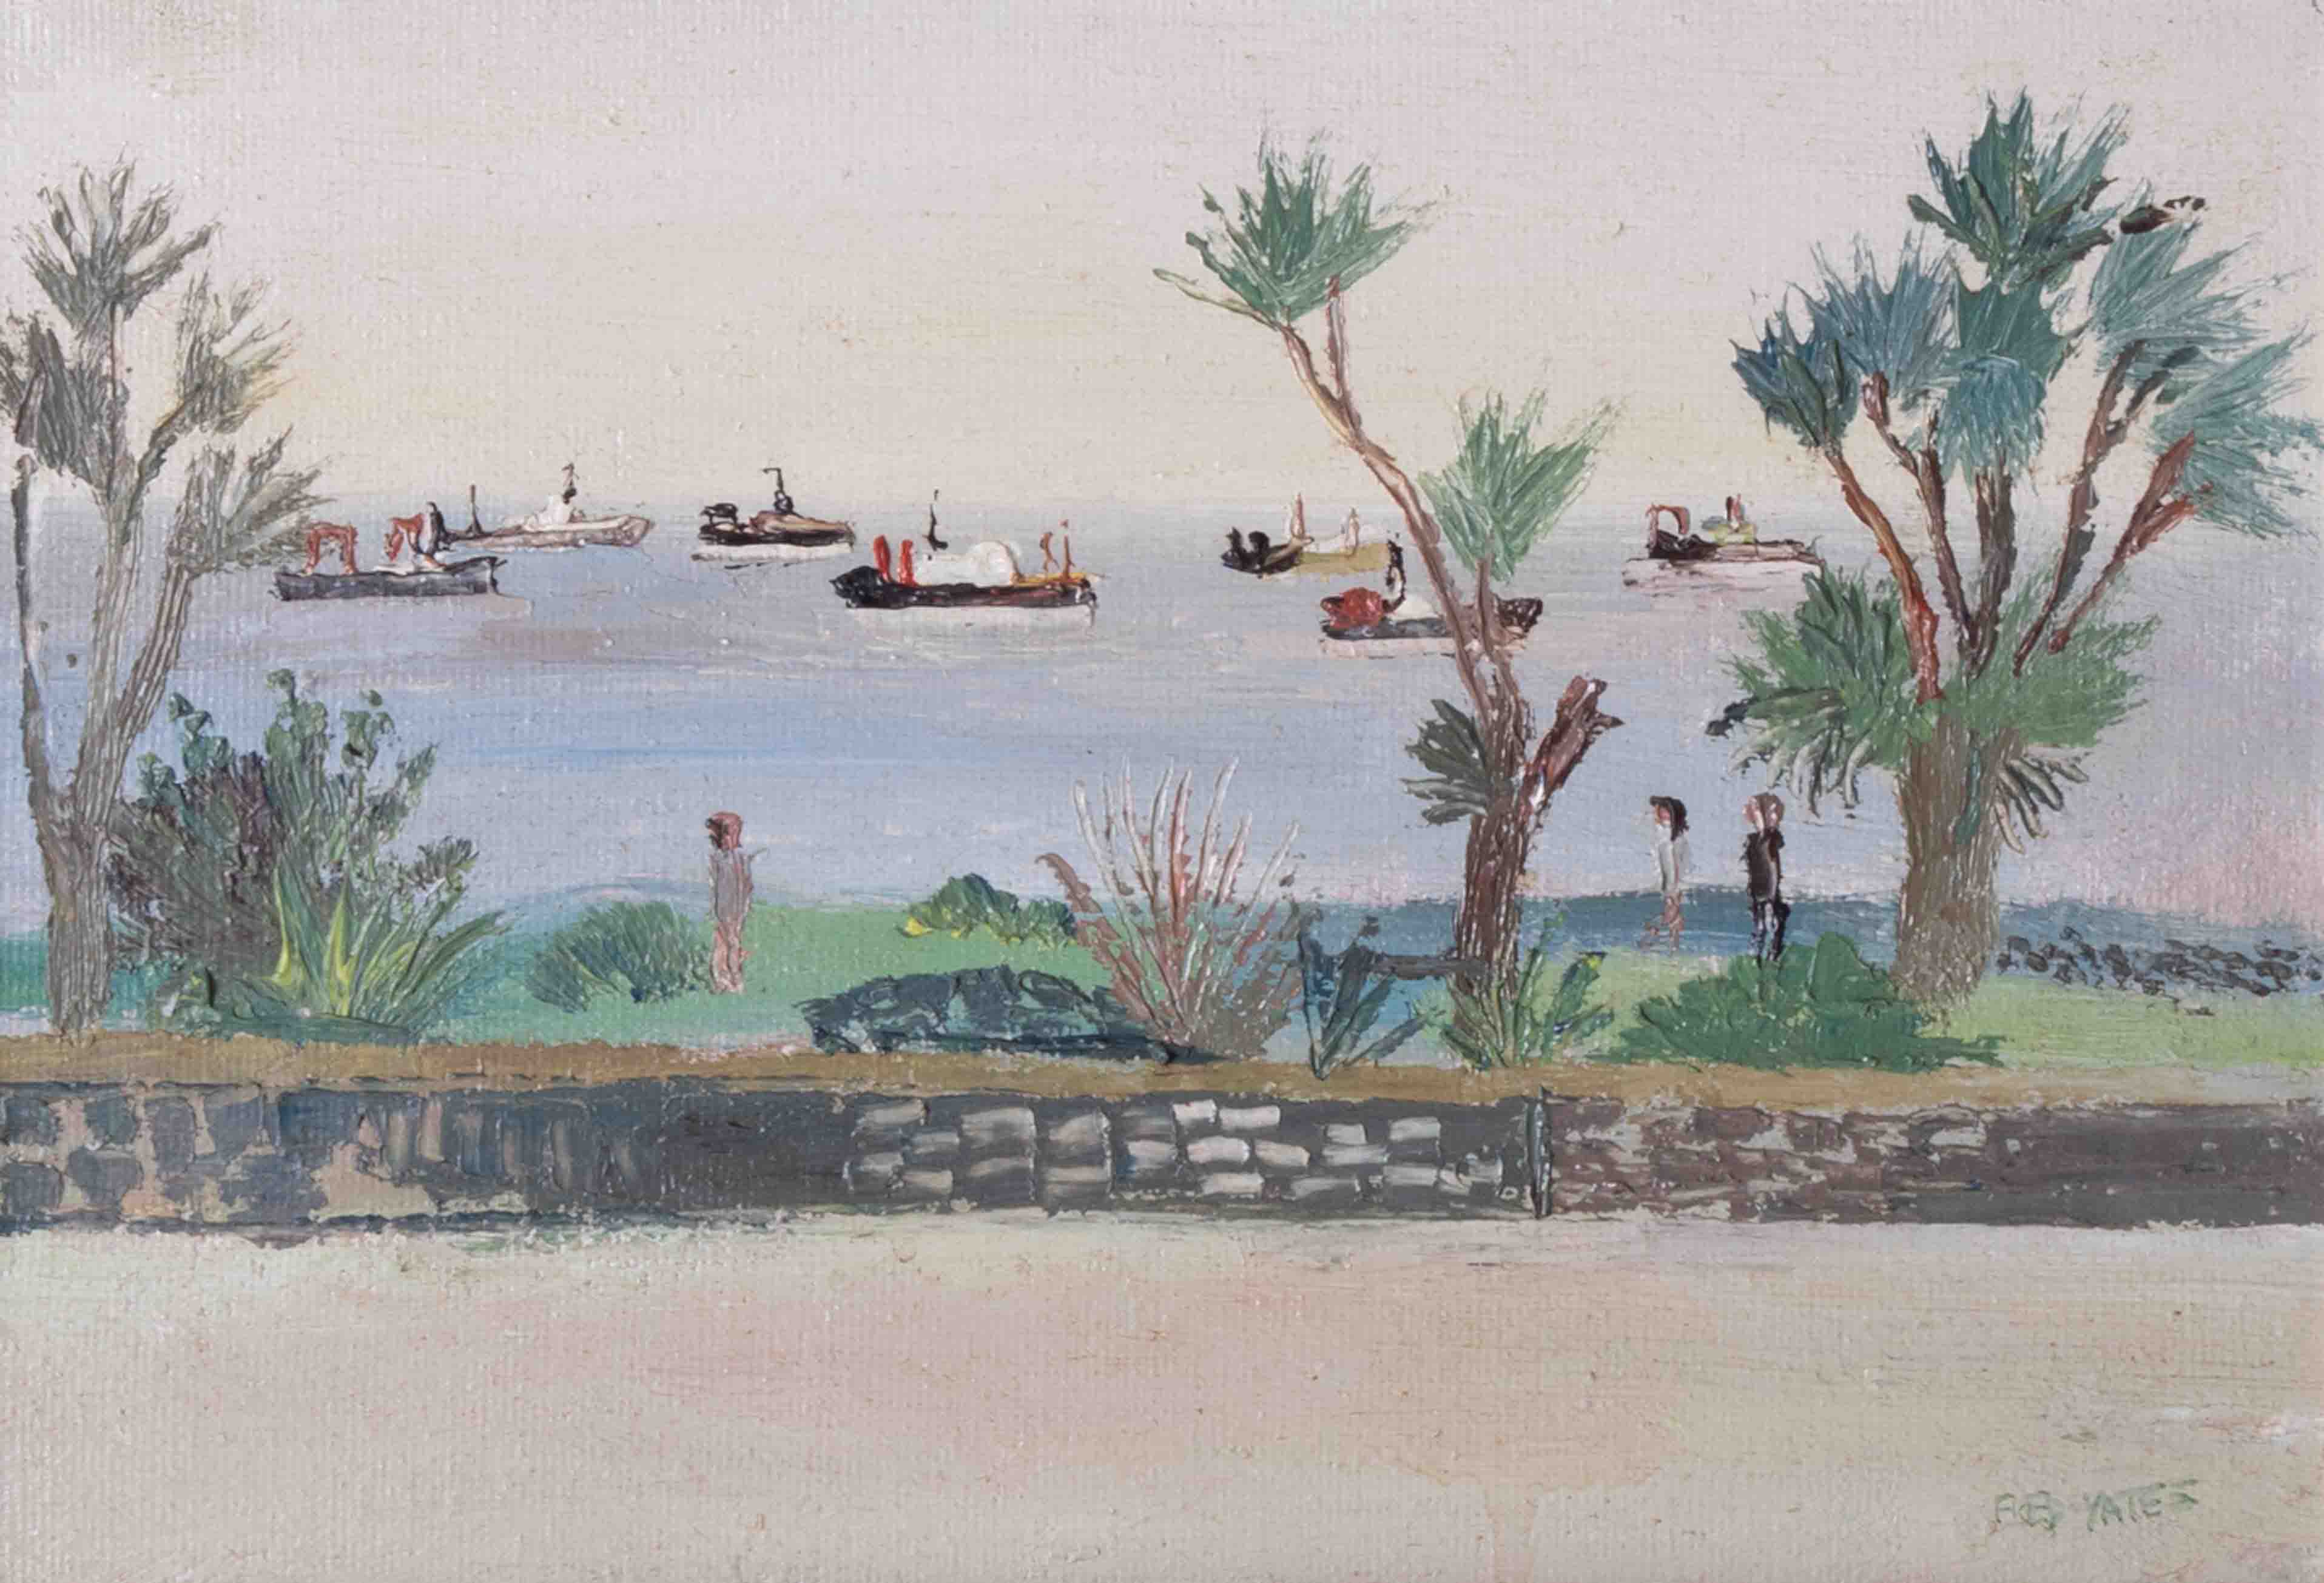 Fred Yates (1922-2008) 'Penzance' oil on canvas, 17cm x 25cm, signed, titled on reverse (No 14), - Image 2 of 3